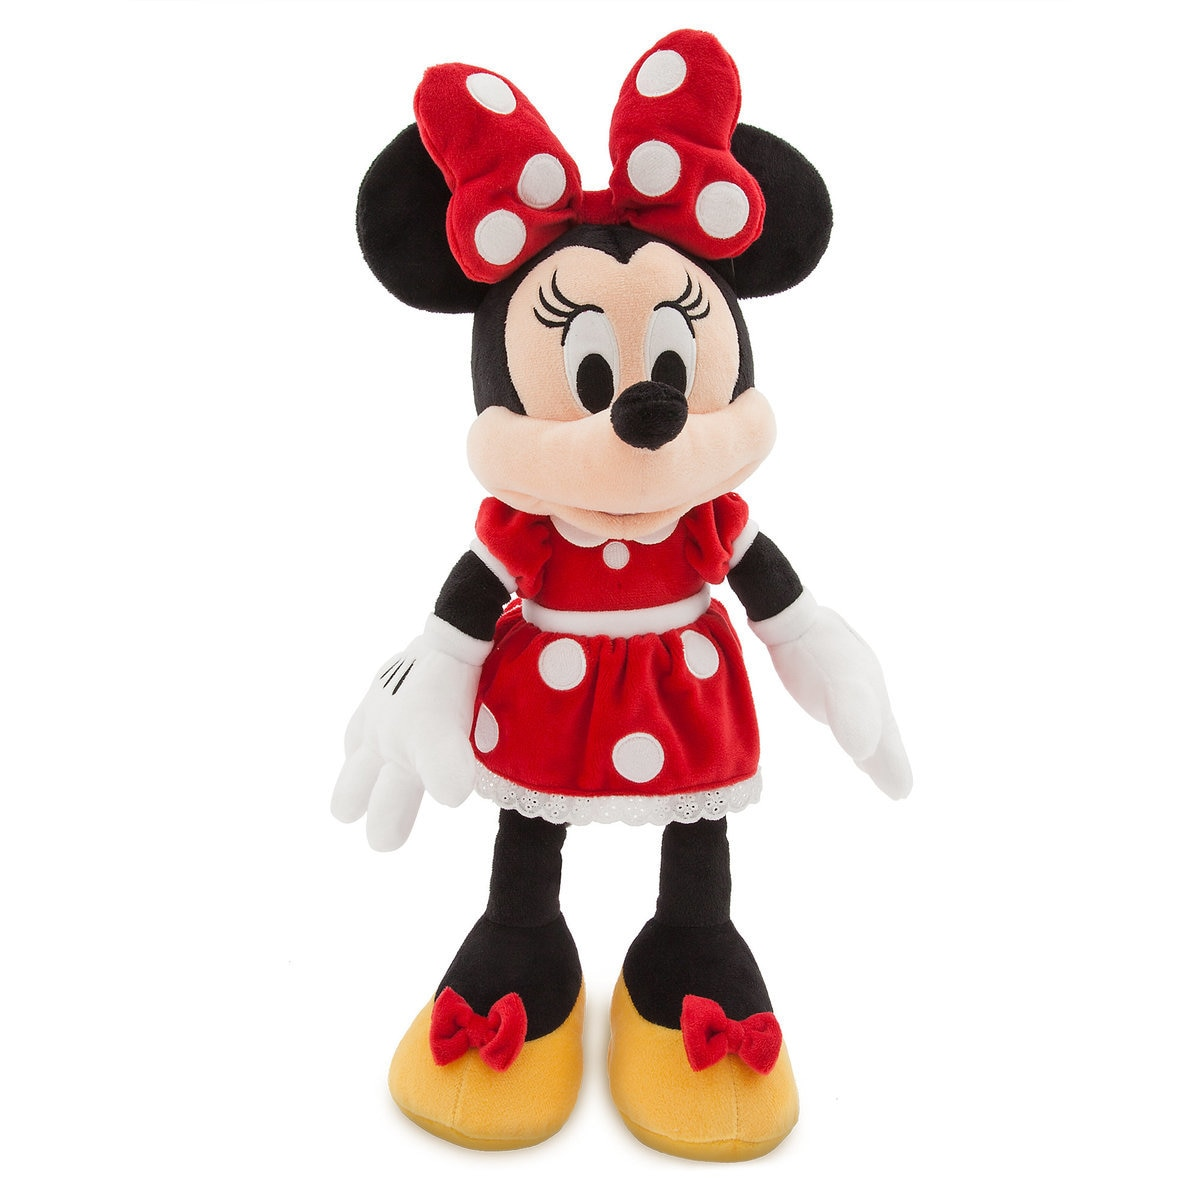 650308f13 Product Image of Minnie Mouse Plush - Red - Medium - 18'' - Personalizable